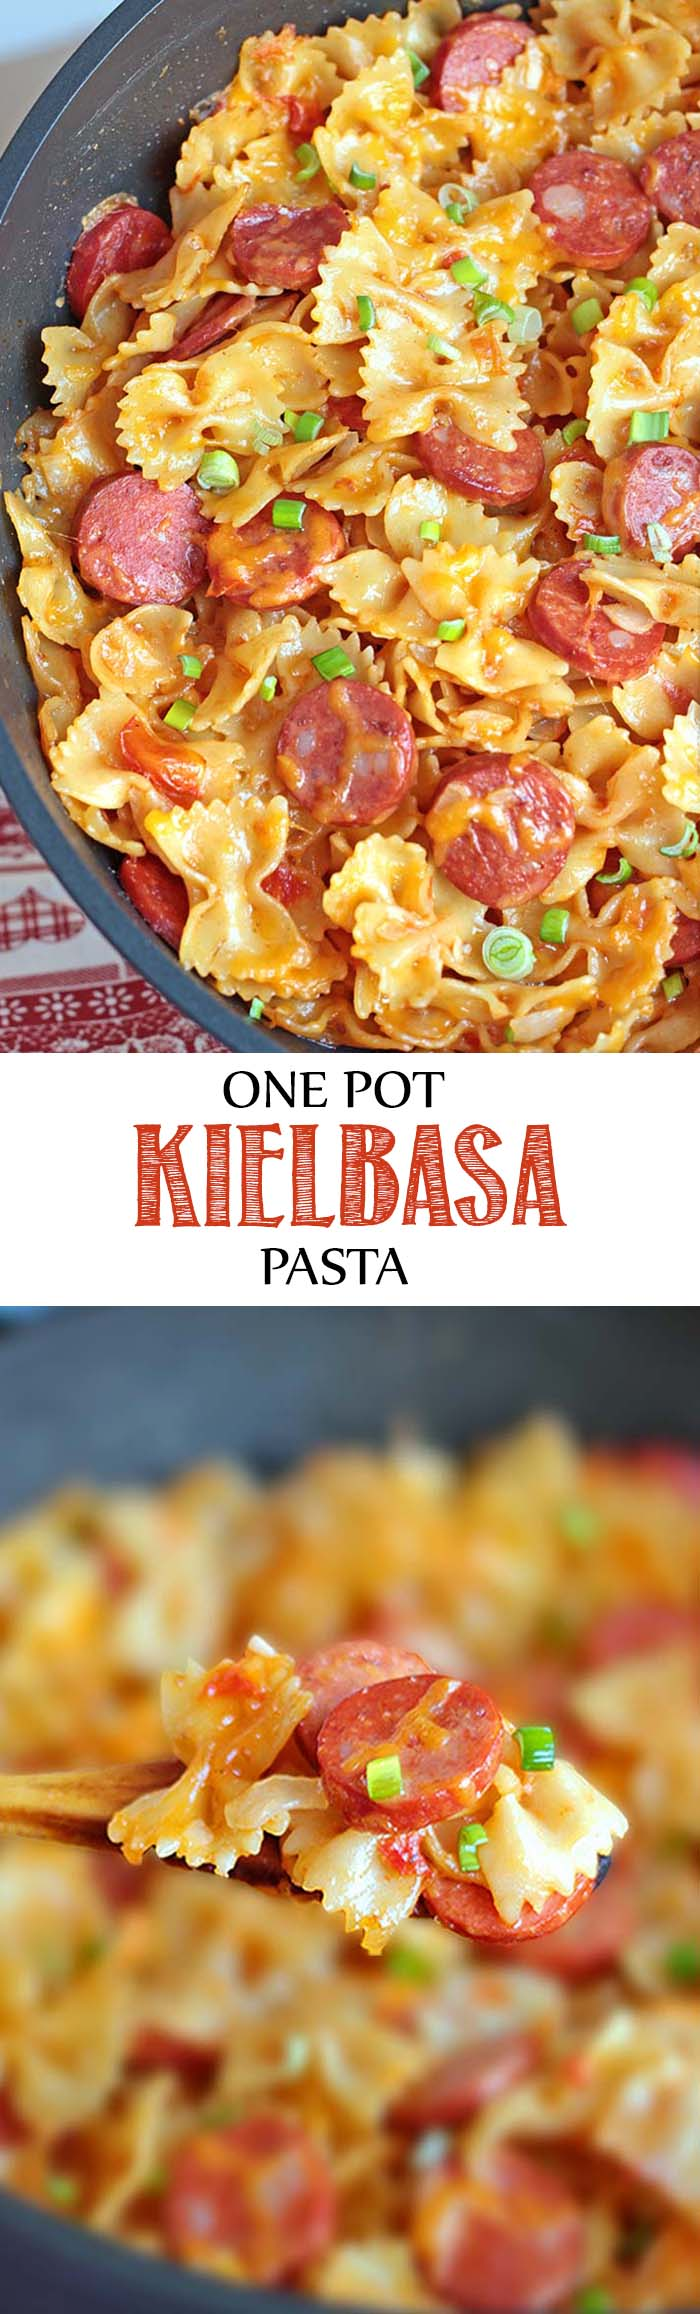 Polish kielbasa and pasta recipes